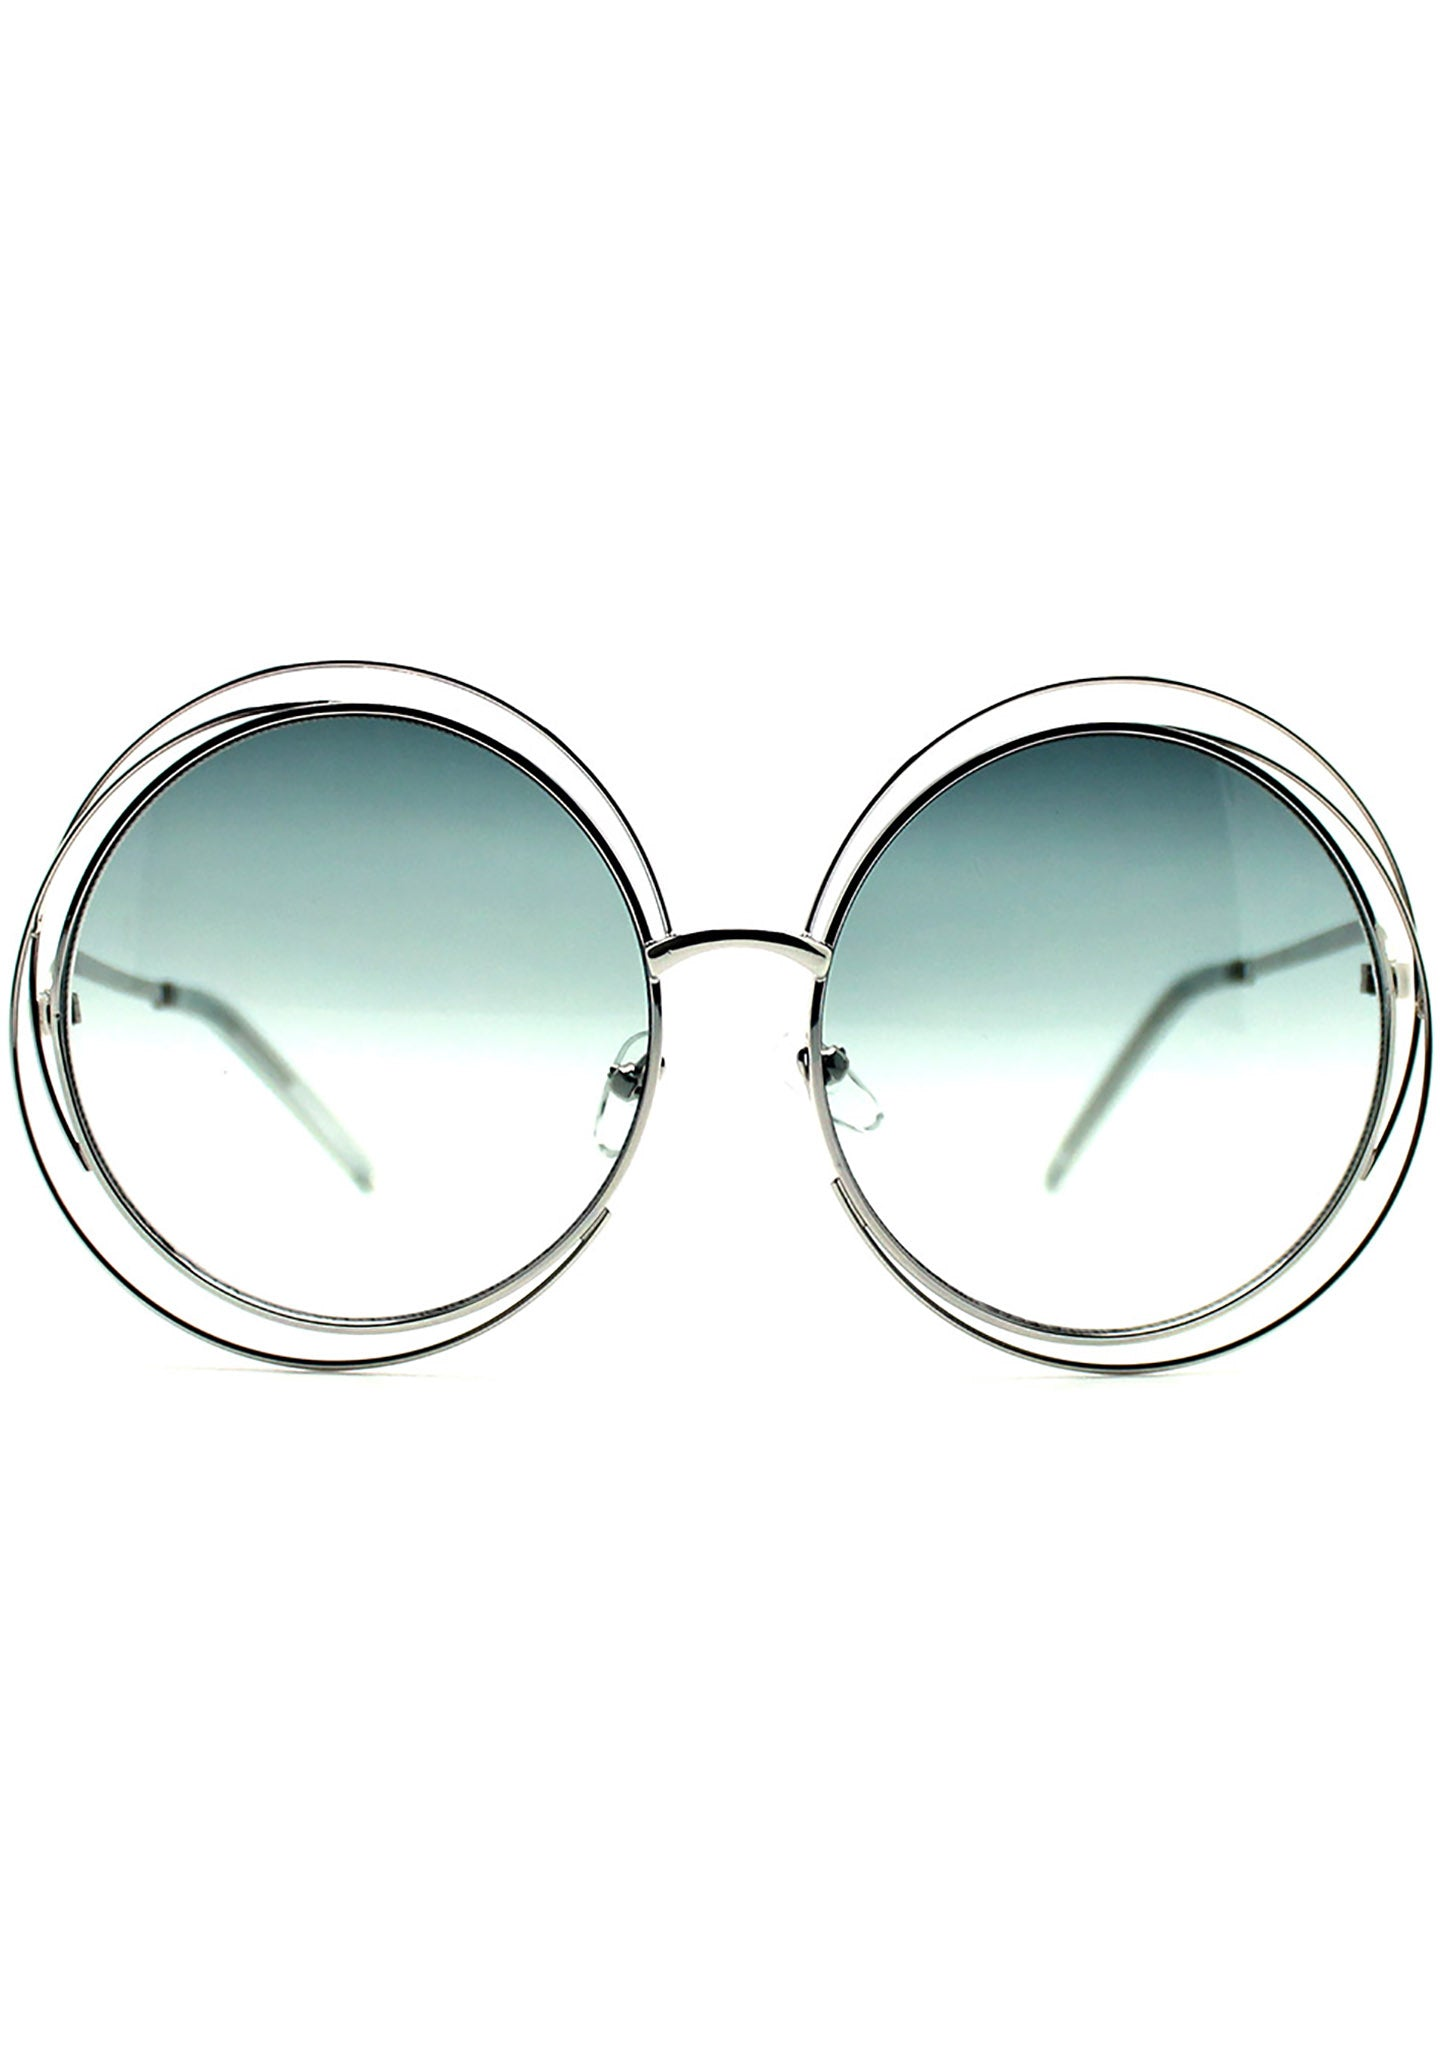 7 LUXE Studio 10 Sunglasses